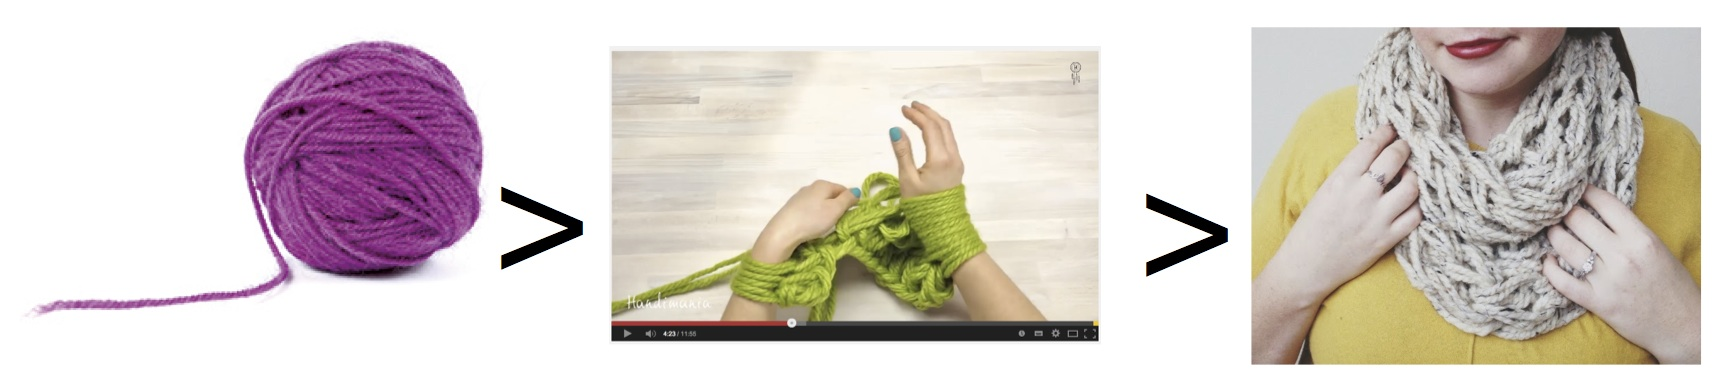 Knit a scarf without any needles - you just need your hands